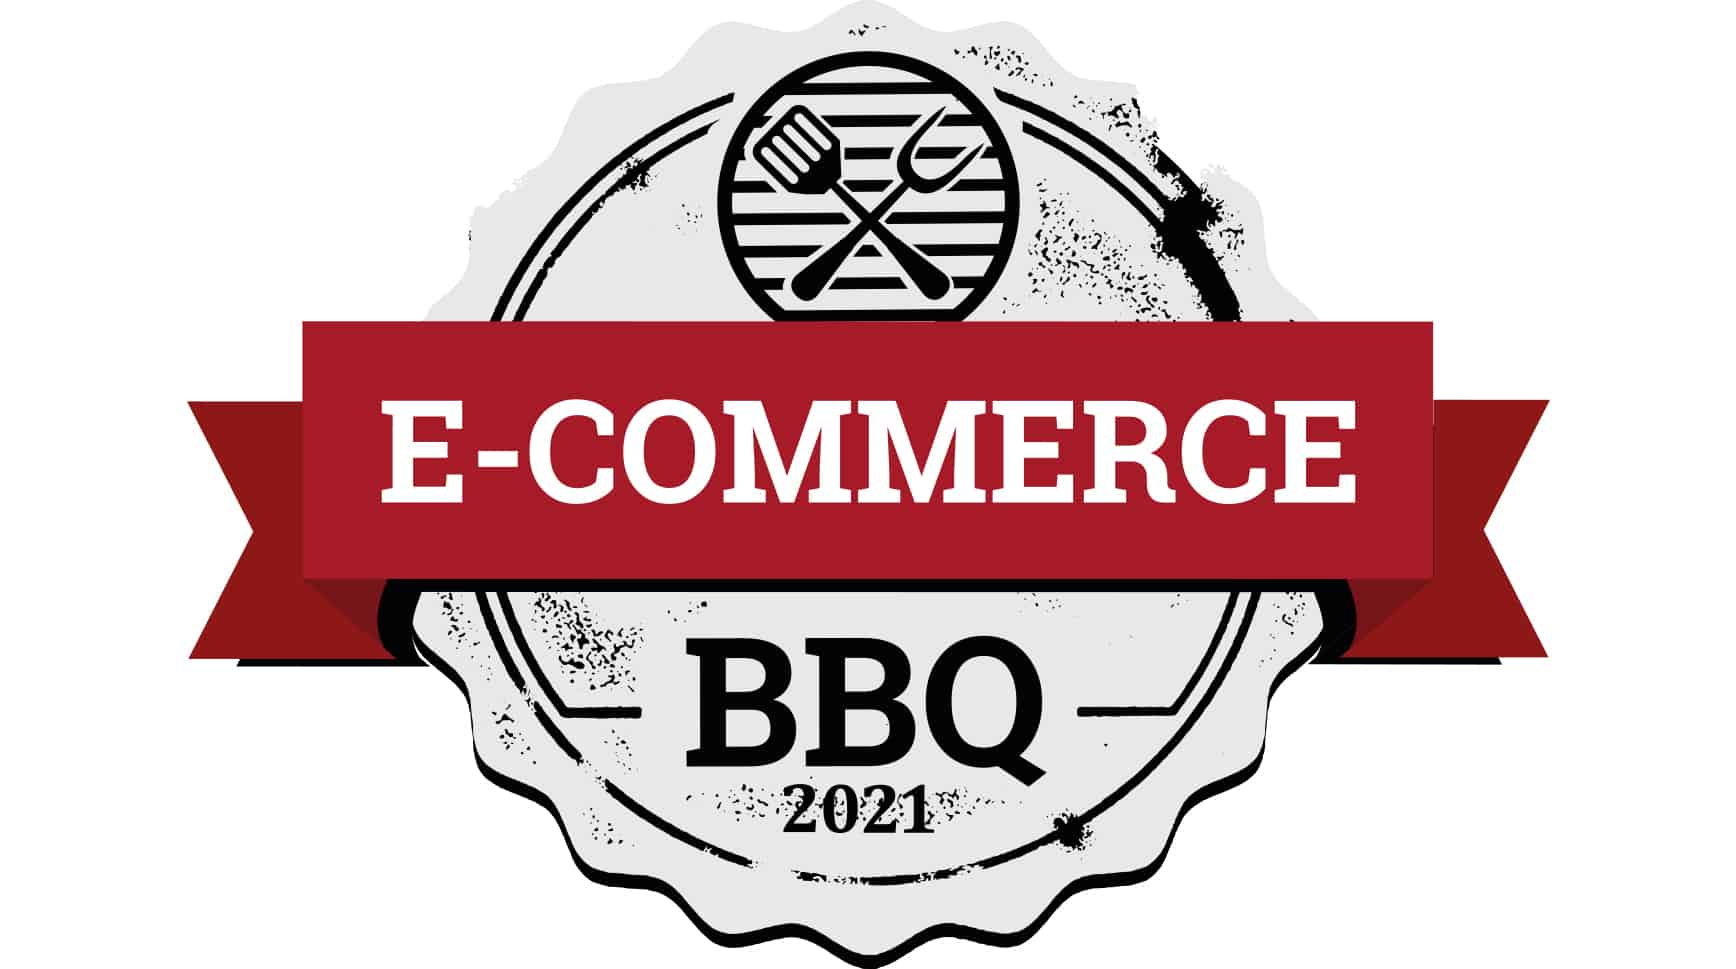 E-Commerce BBQ